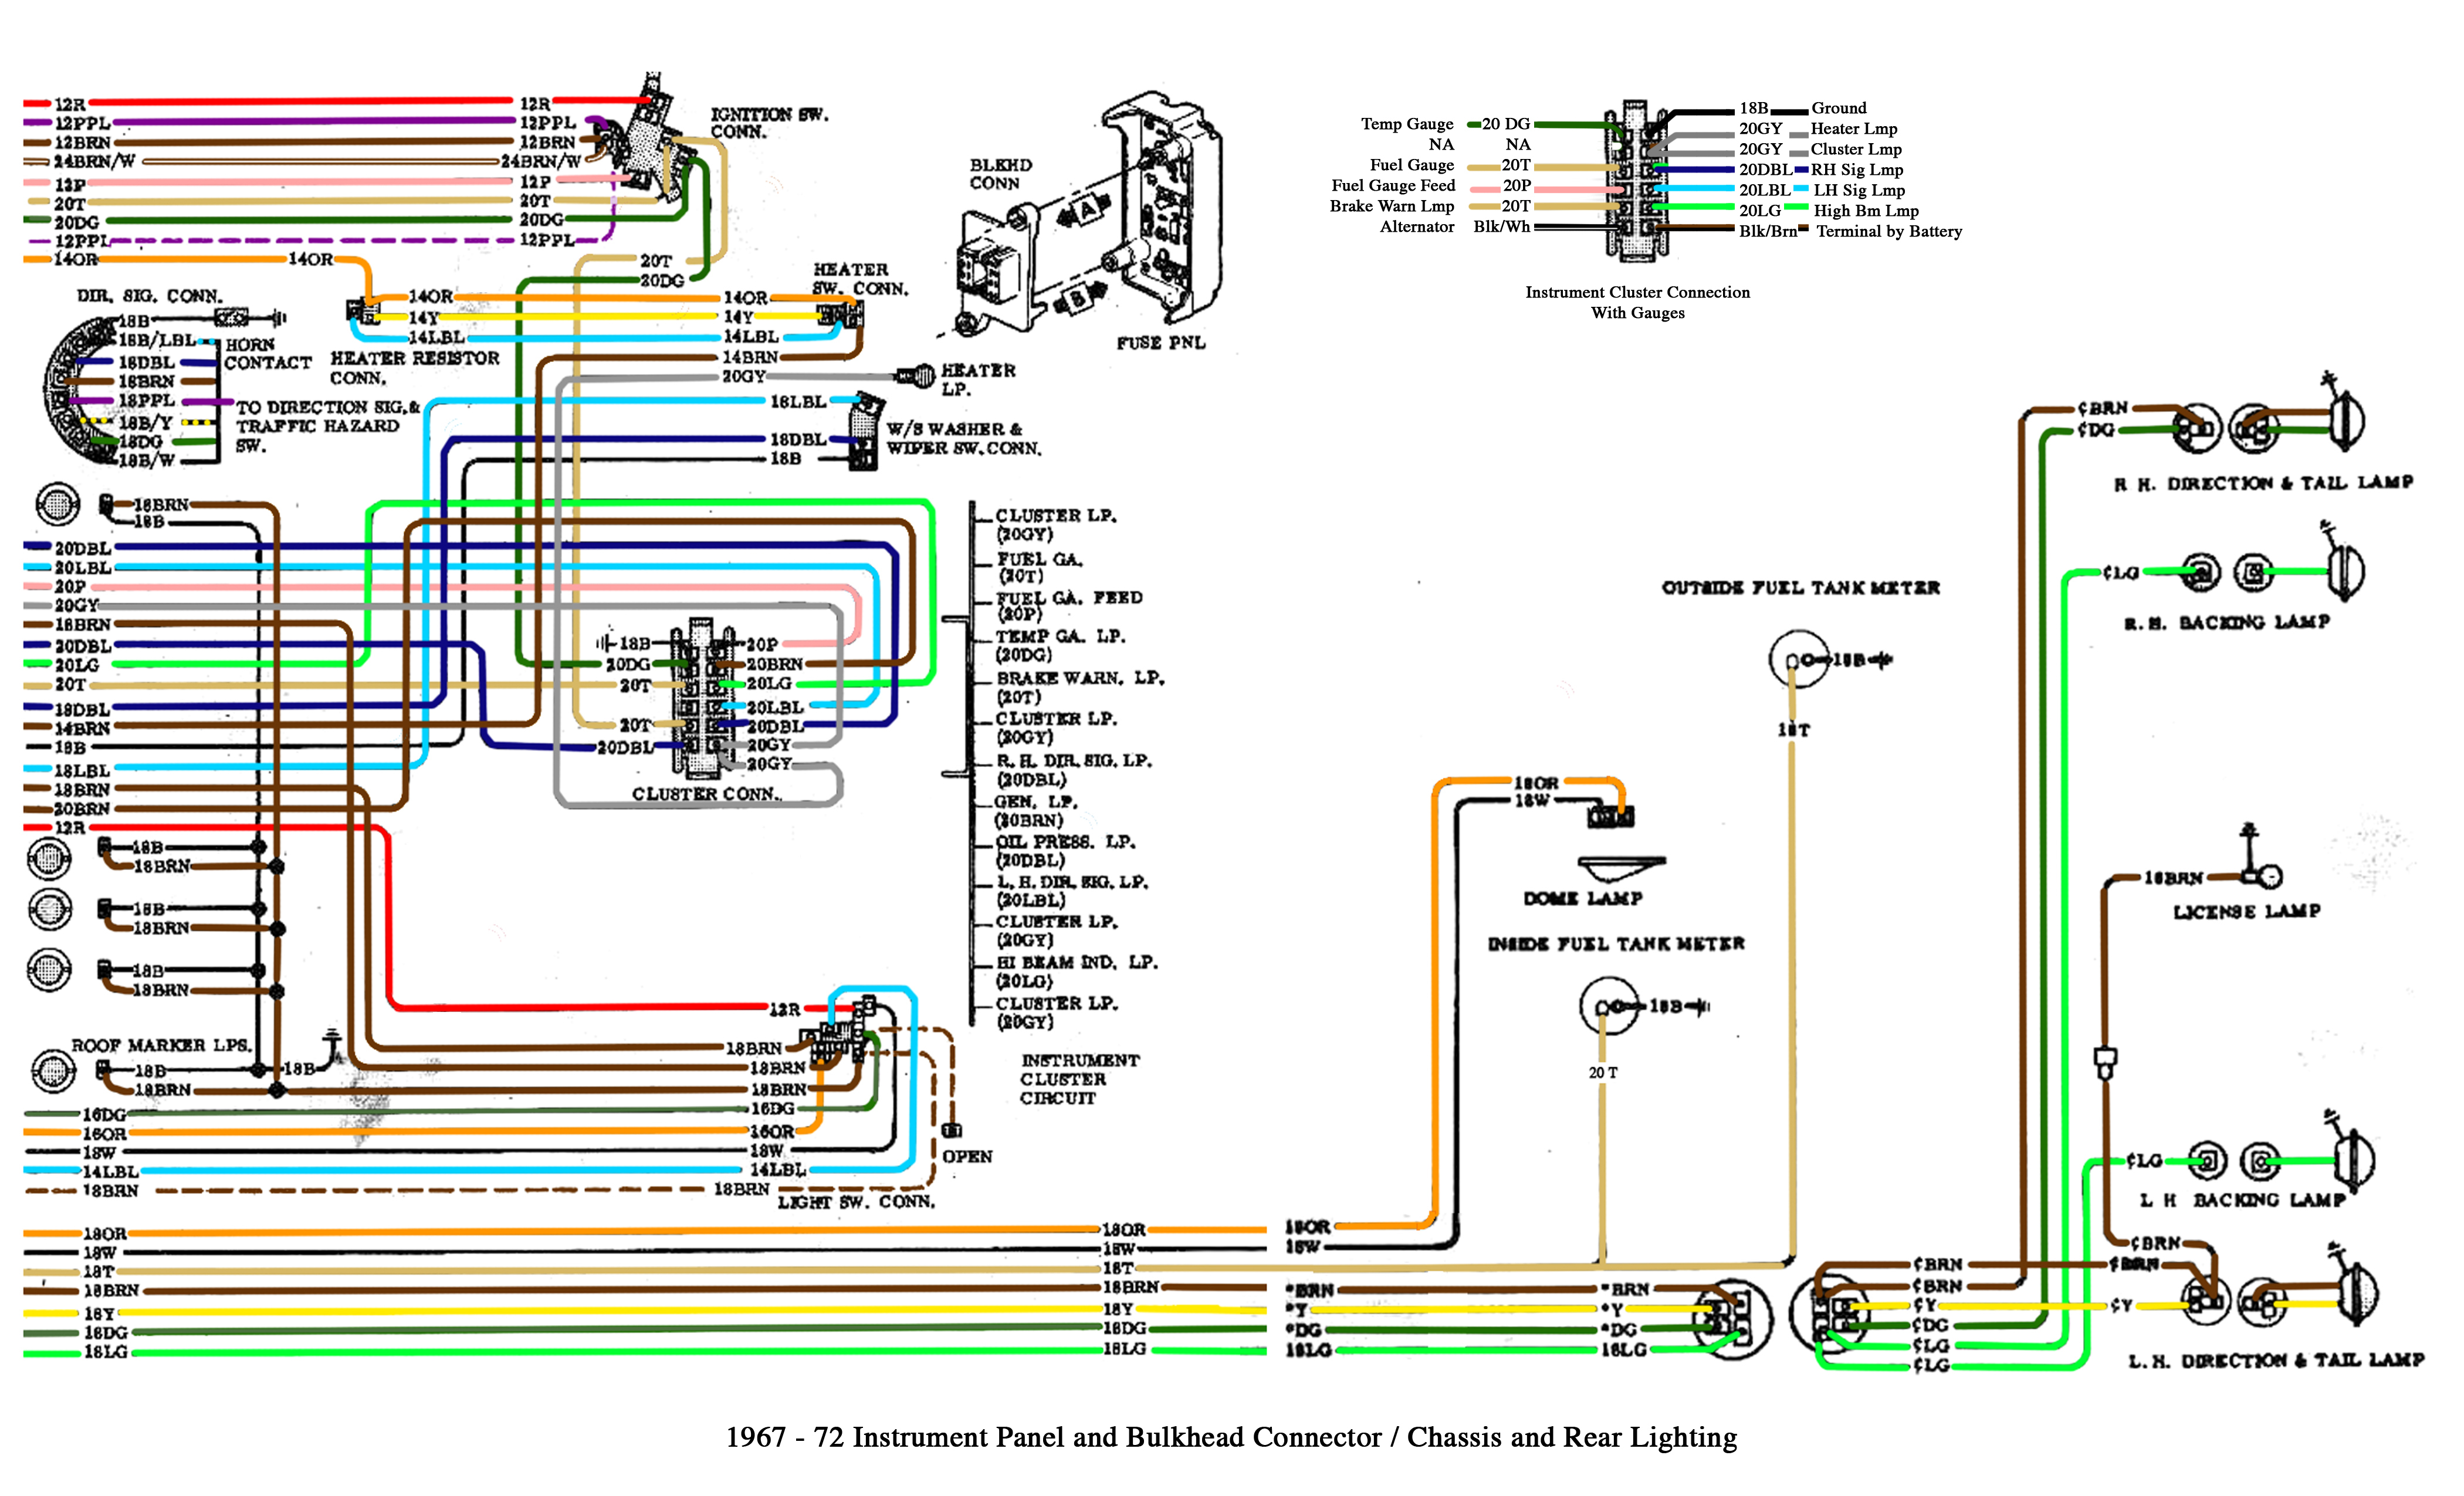 Chevy Truck Fuse Diagram | Manual E-Books - 1990 Chevy 1500 Fuel Pump Wiring Diagram